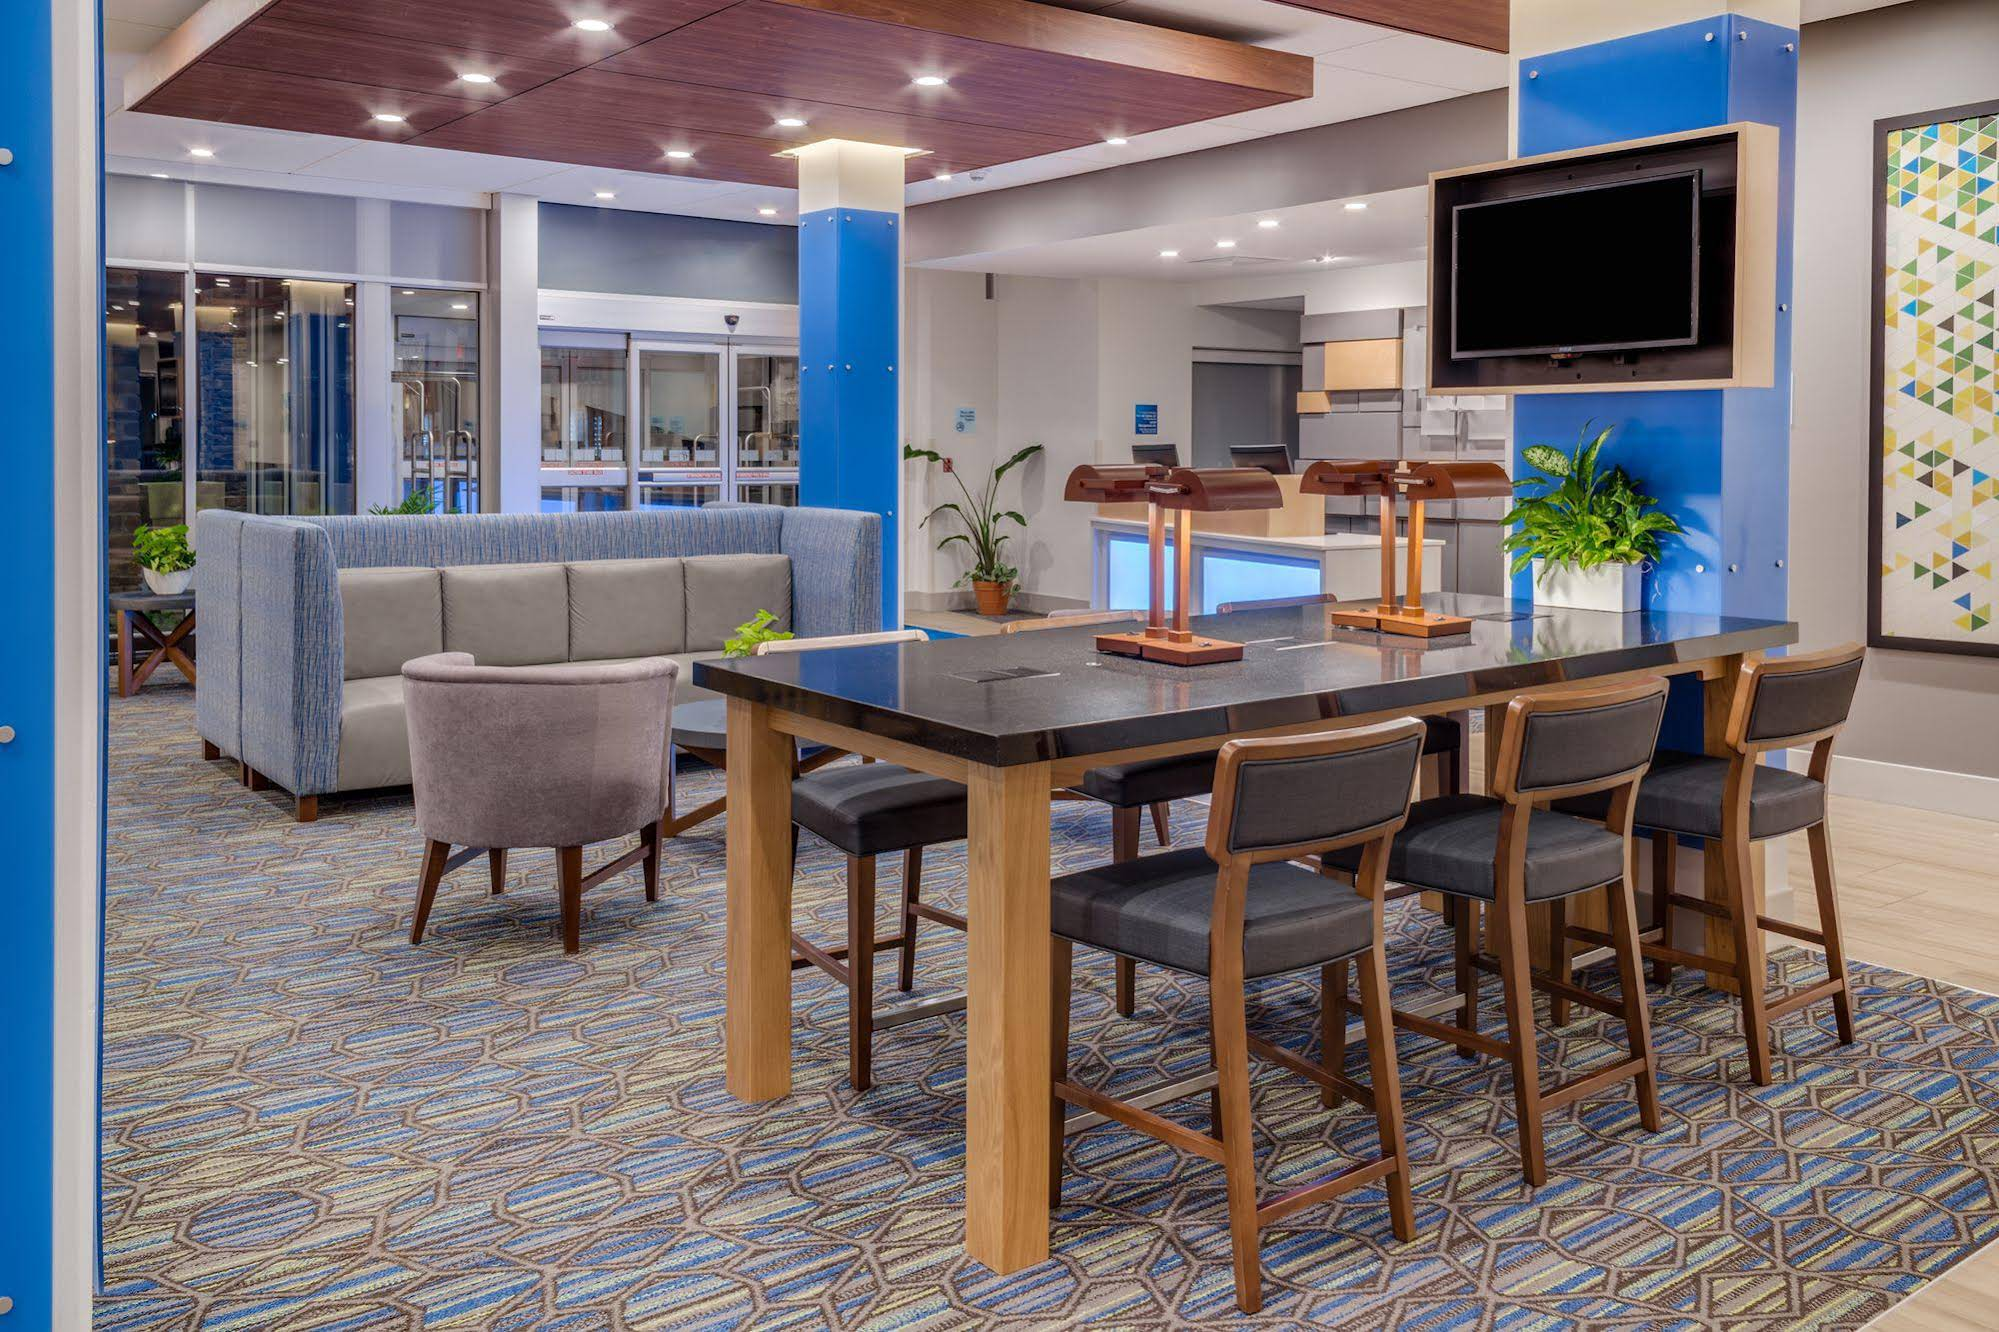 Holiday Inn Express and Suites Rice Lake